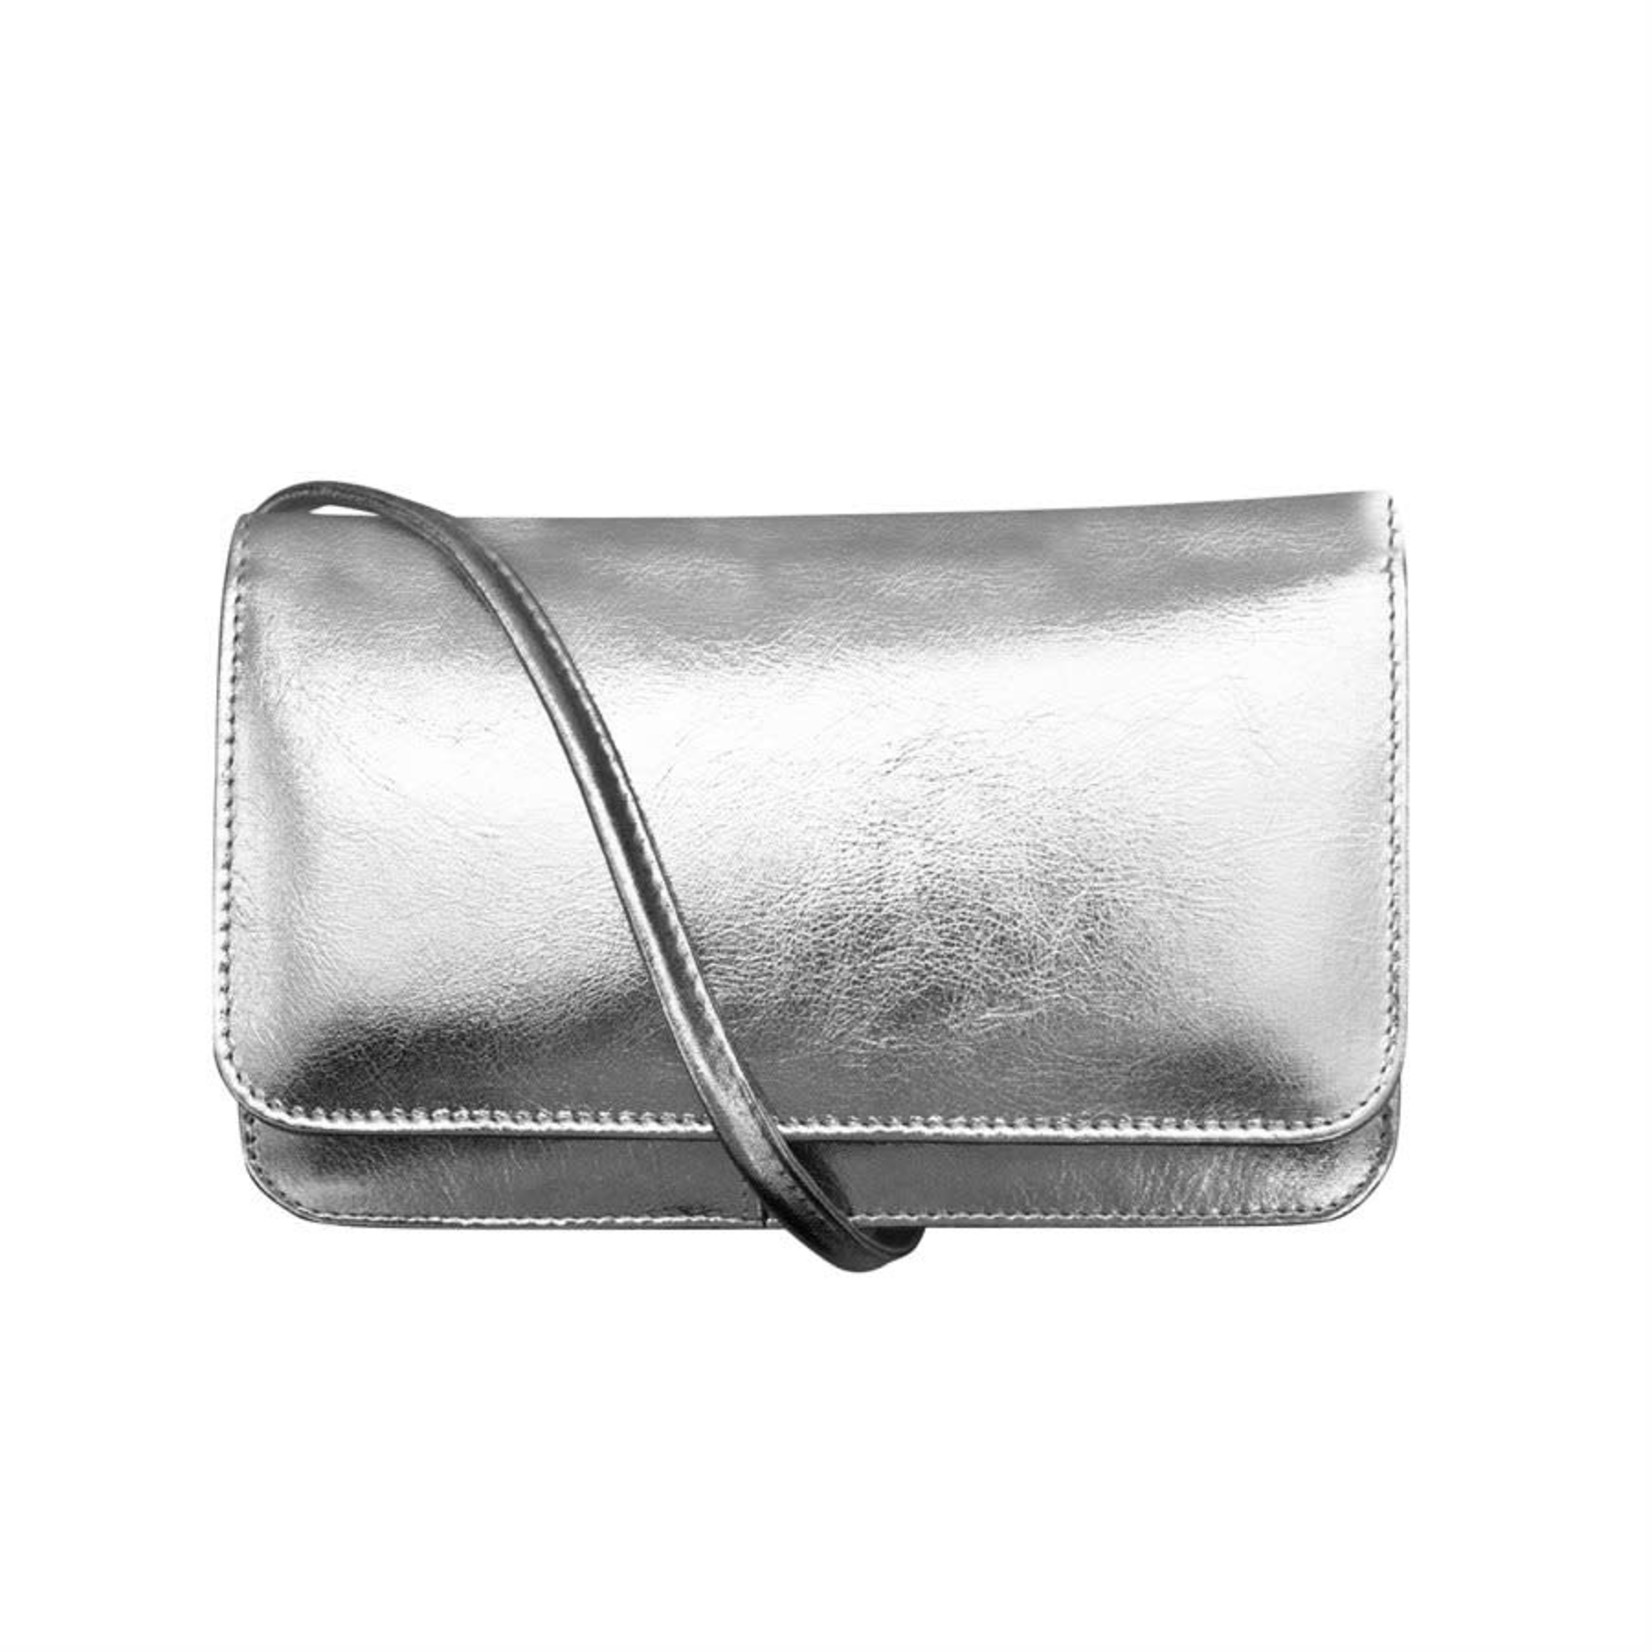 Leather Handbags and Accessories 6517M Silver - RFID Smartphone Crossbody